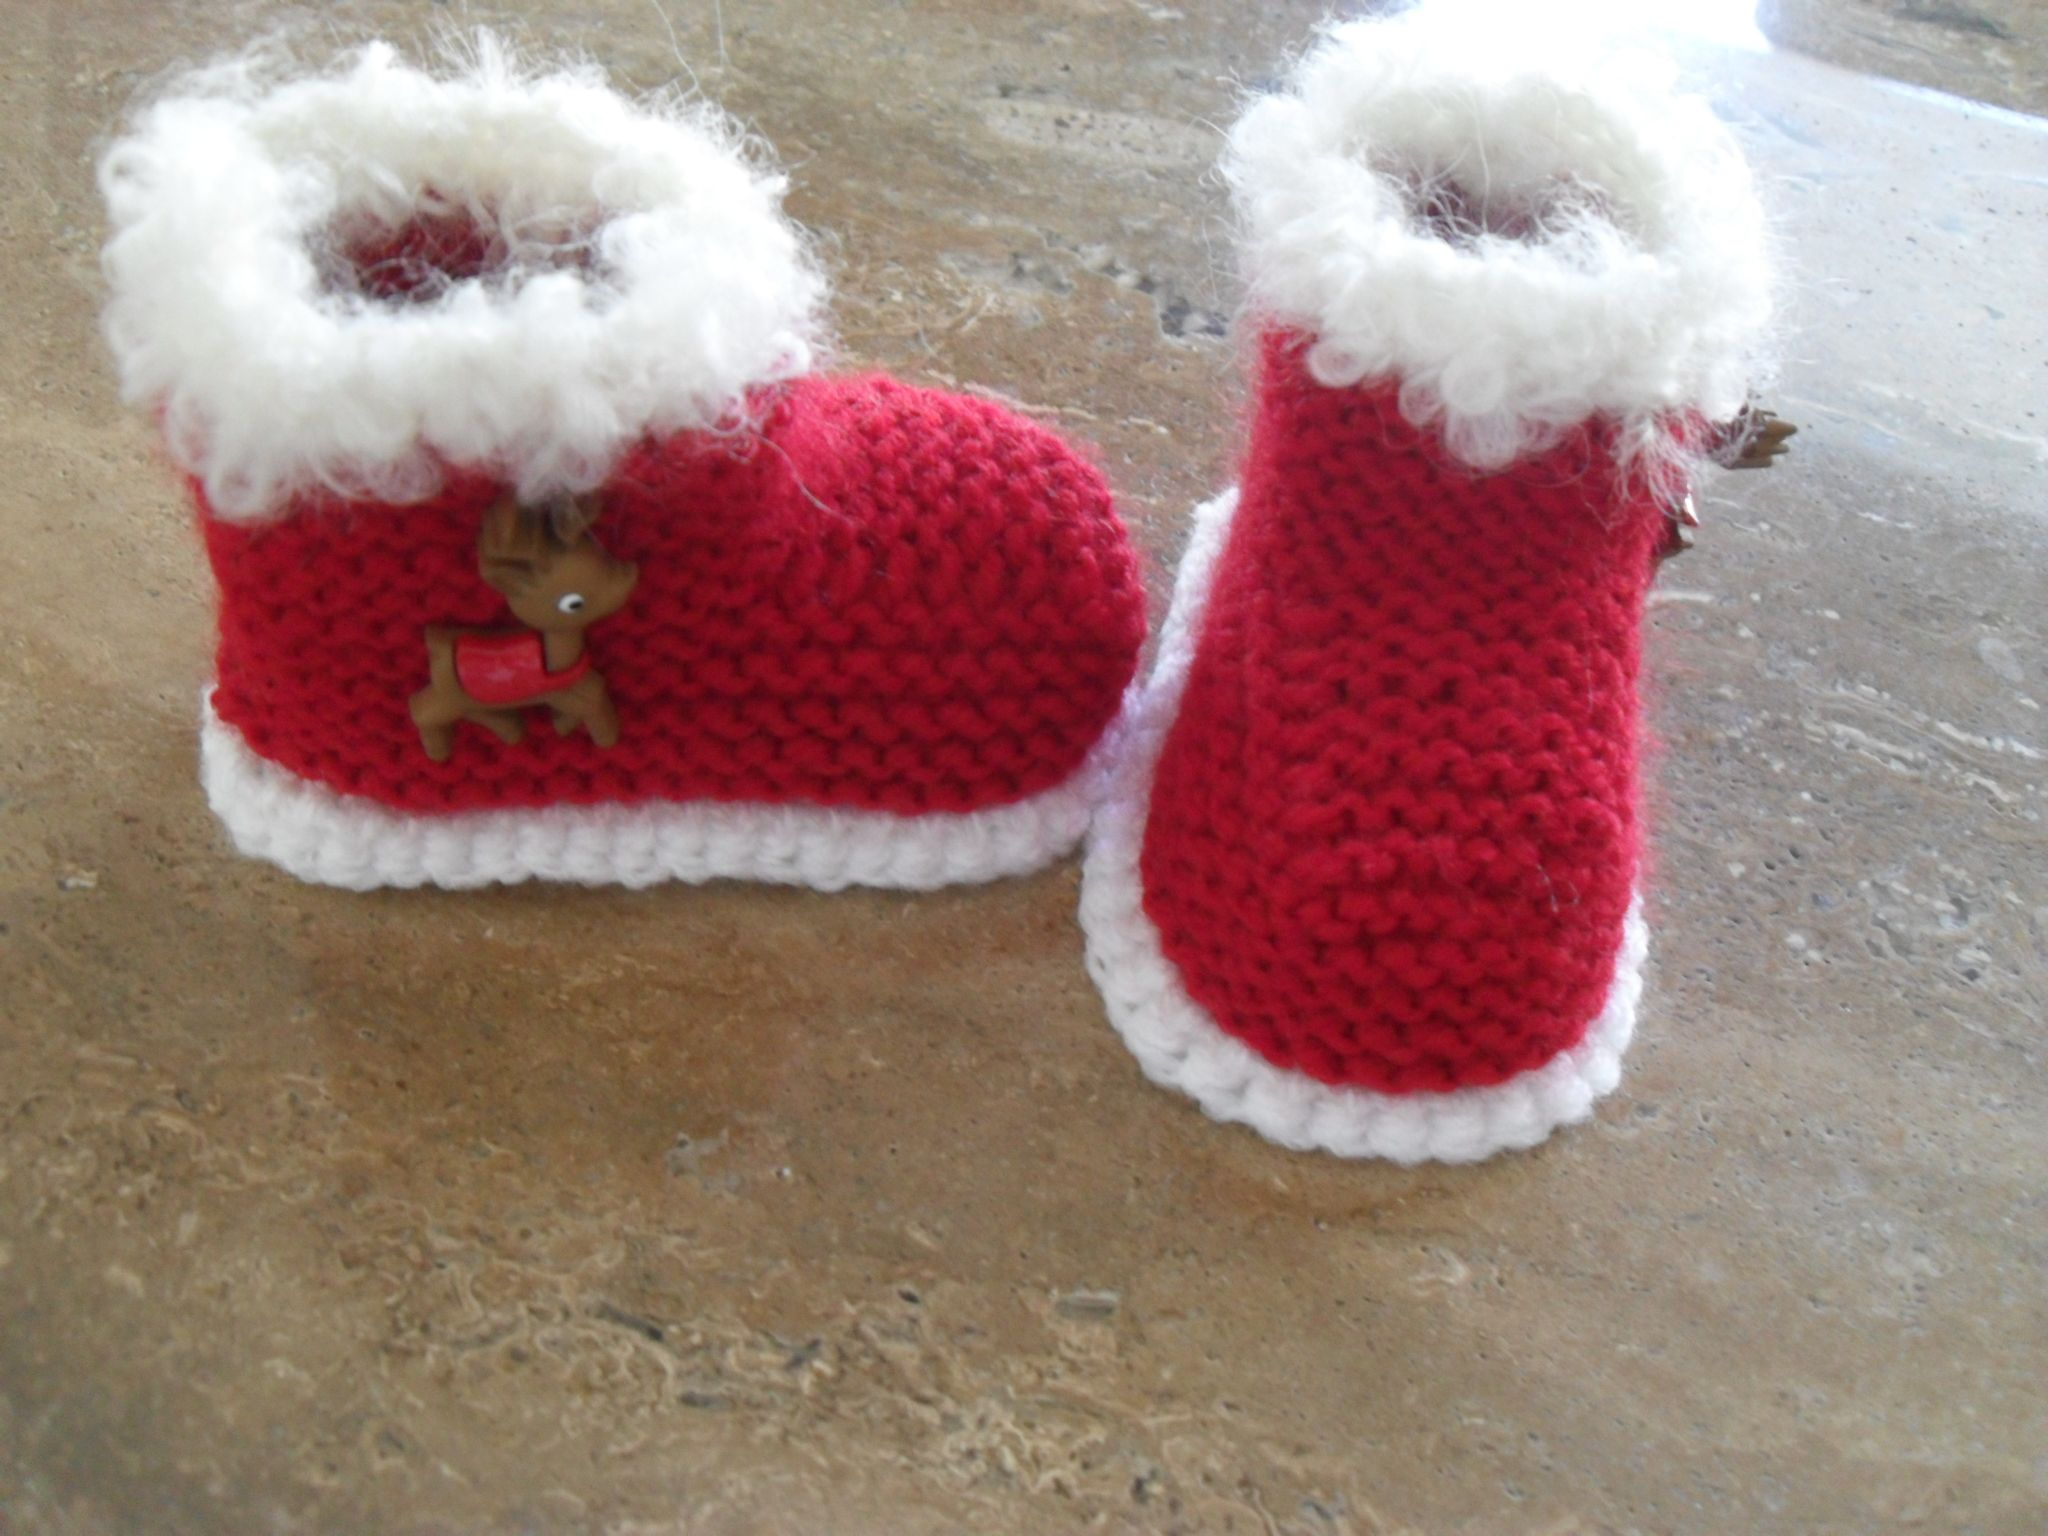 Christmas Knitting Patterns For Babies.Baby Christmas Knitting Pattern Baby Santa Booties Knitting